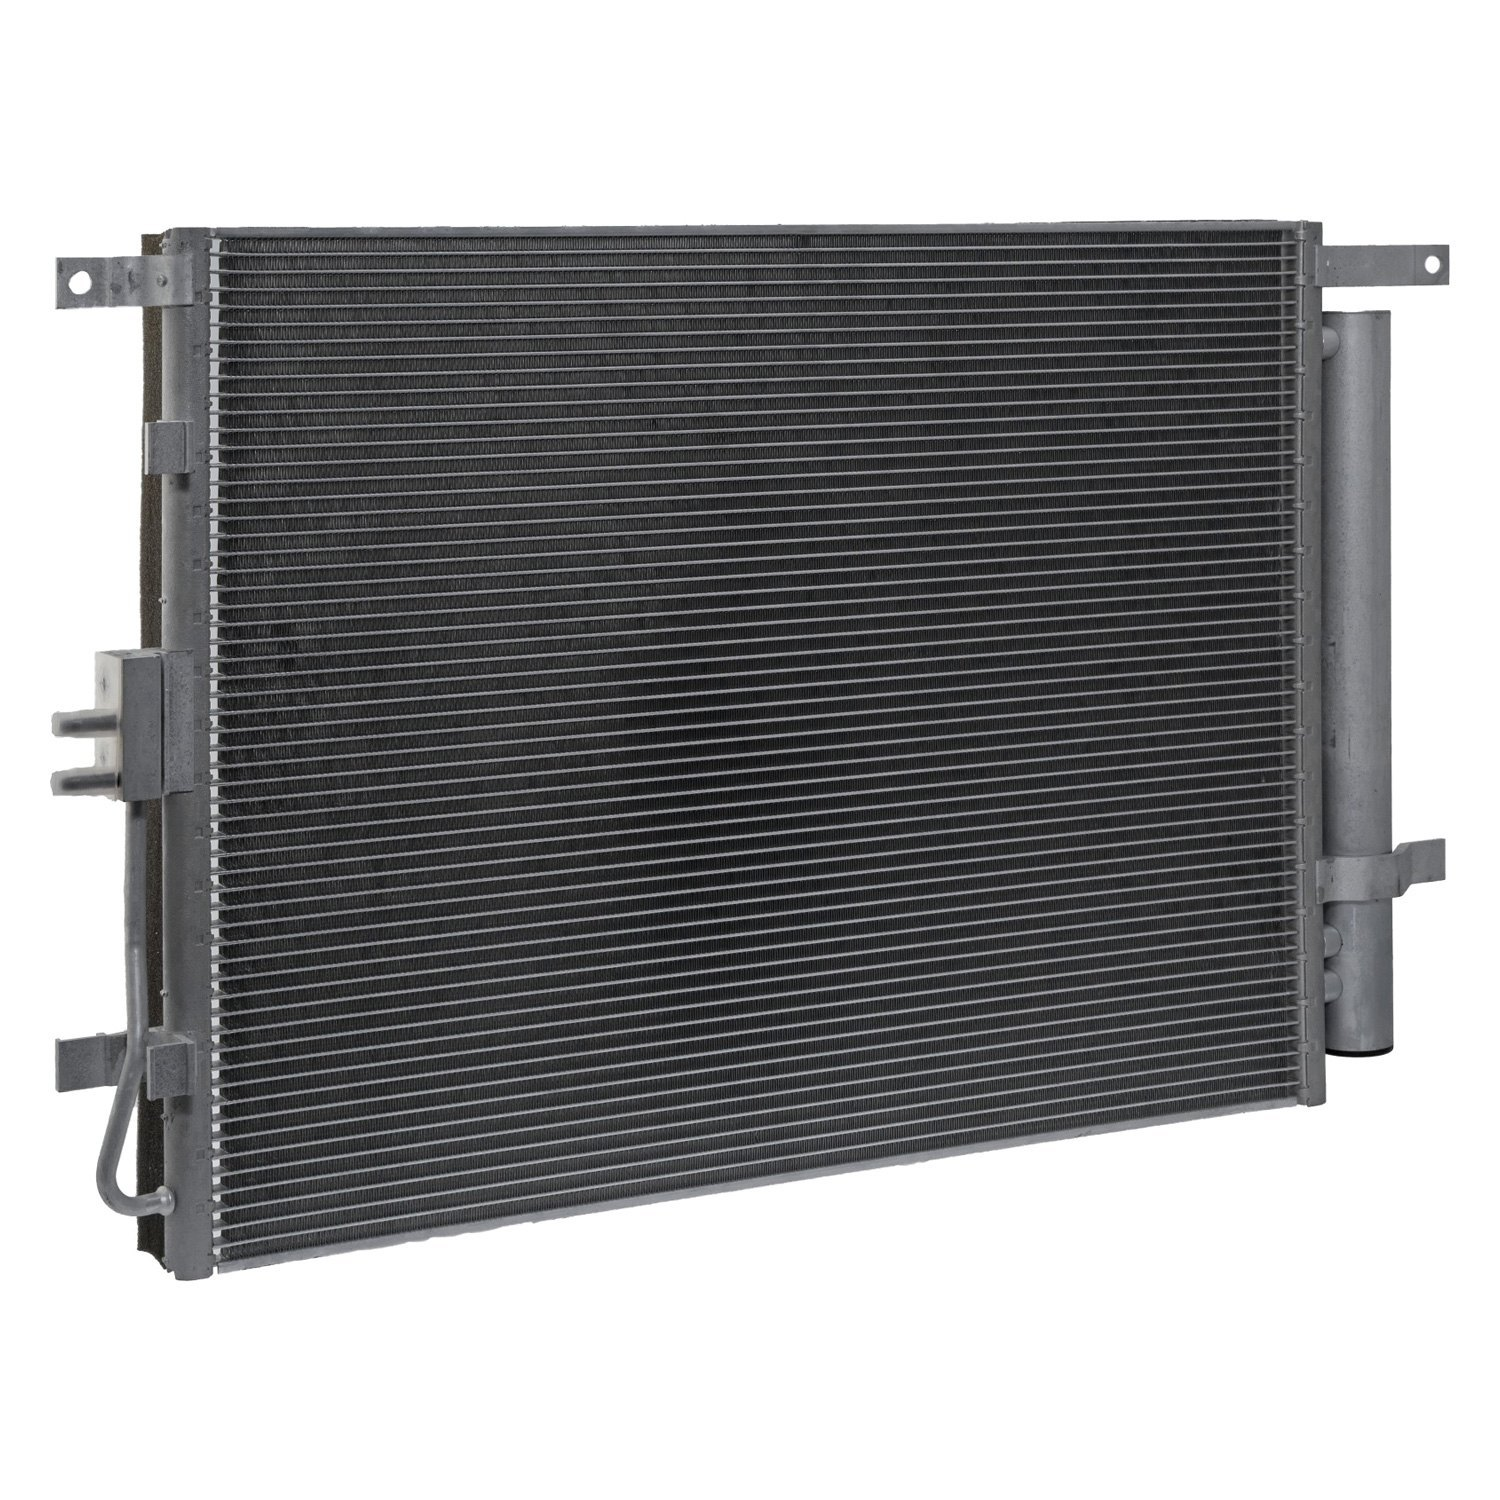 #595752 Auto 7® Kia Soul 2010 2011 A/C Condenser Most Effective 8625 Air Conditioning Edmonton Auto pictures with 1500x1500 px on helpvideos.info - Air Conditioners, Air Coolers and more